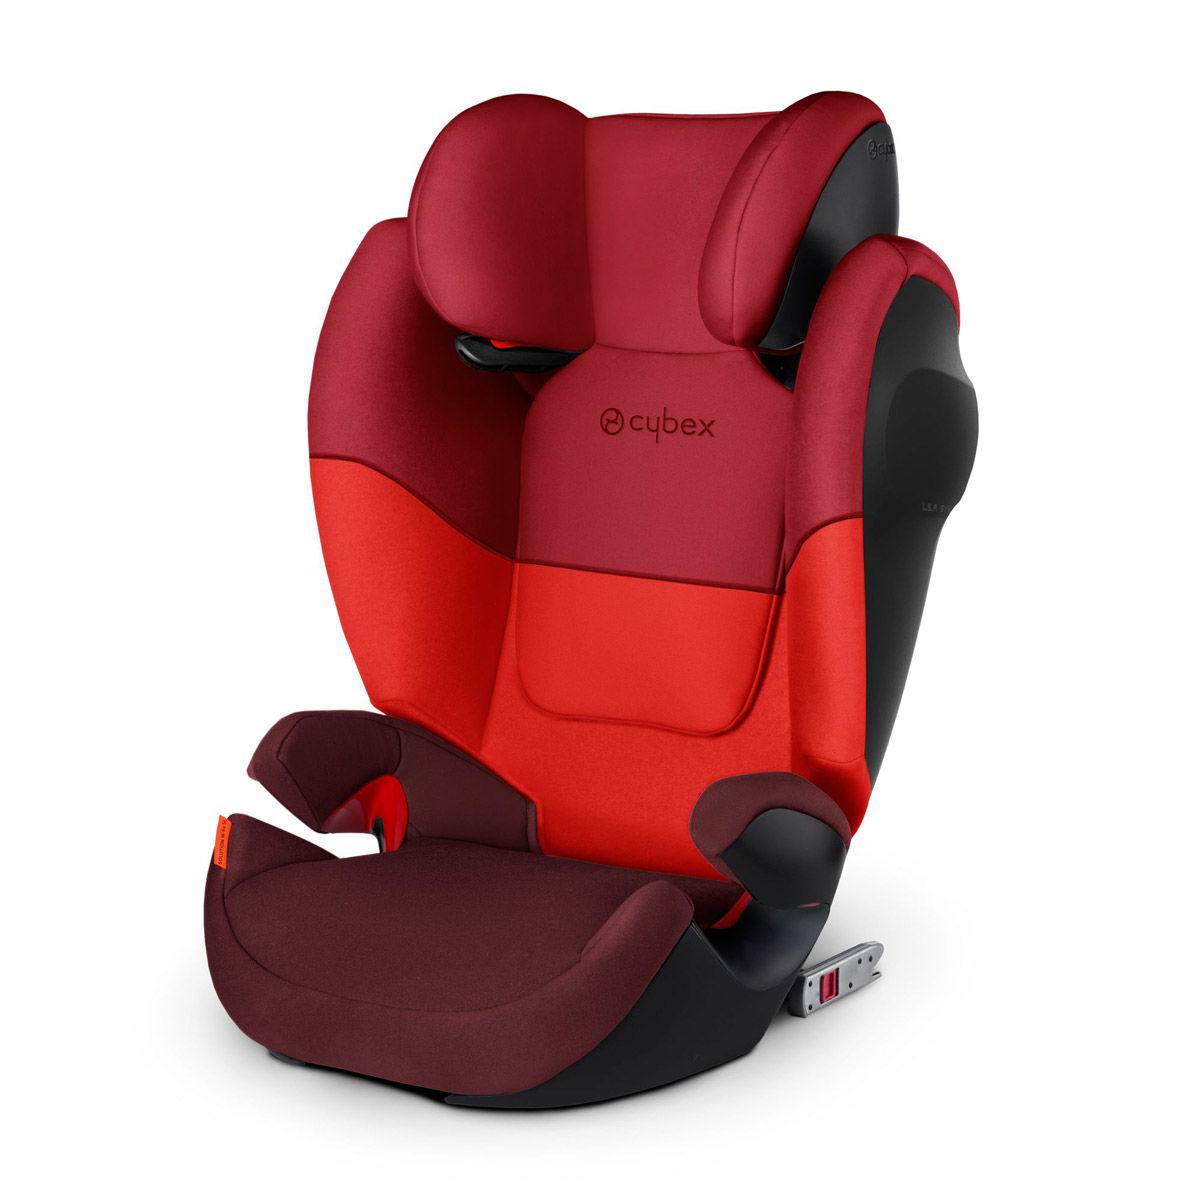 cybex solution m fix sl kindersitz rumba red 2019. Black Bedroom Furniture Sets. Home Design Ideas